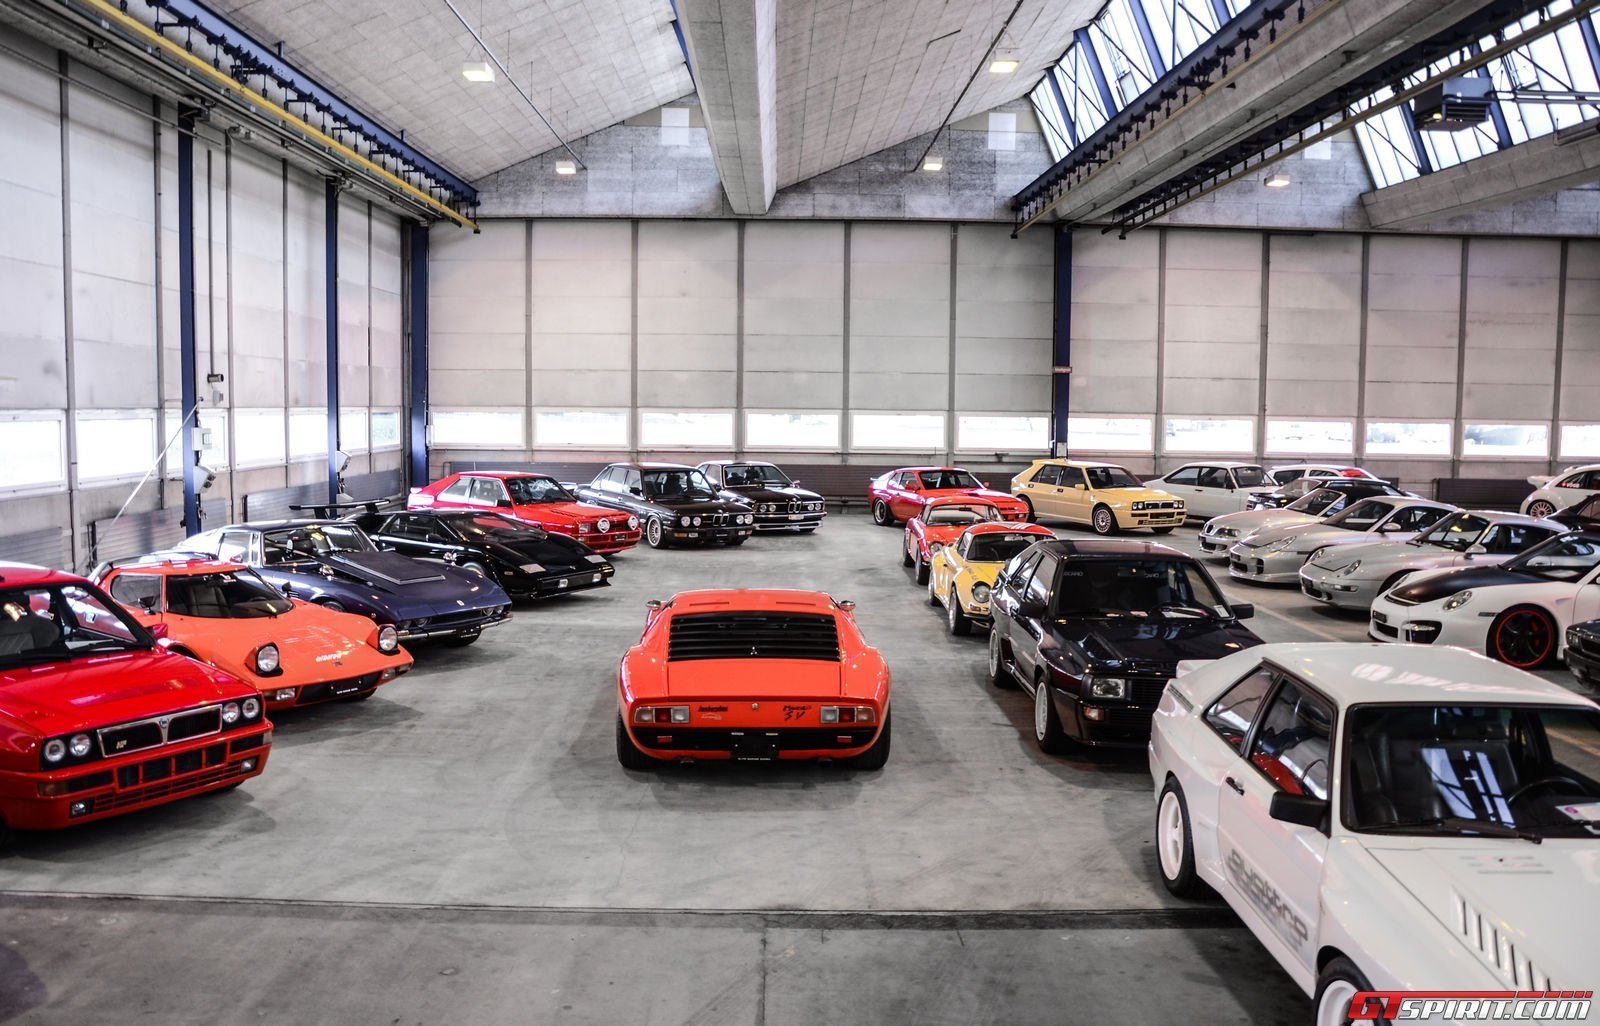 A peak inside a garage packed with 1100 sports luxury and for Car and garage